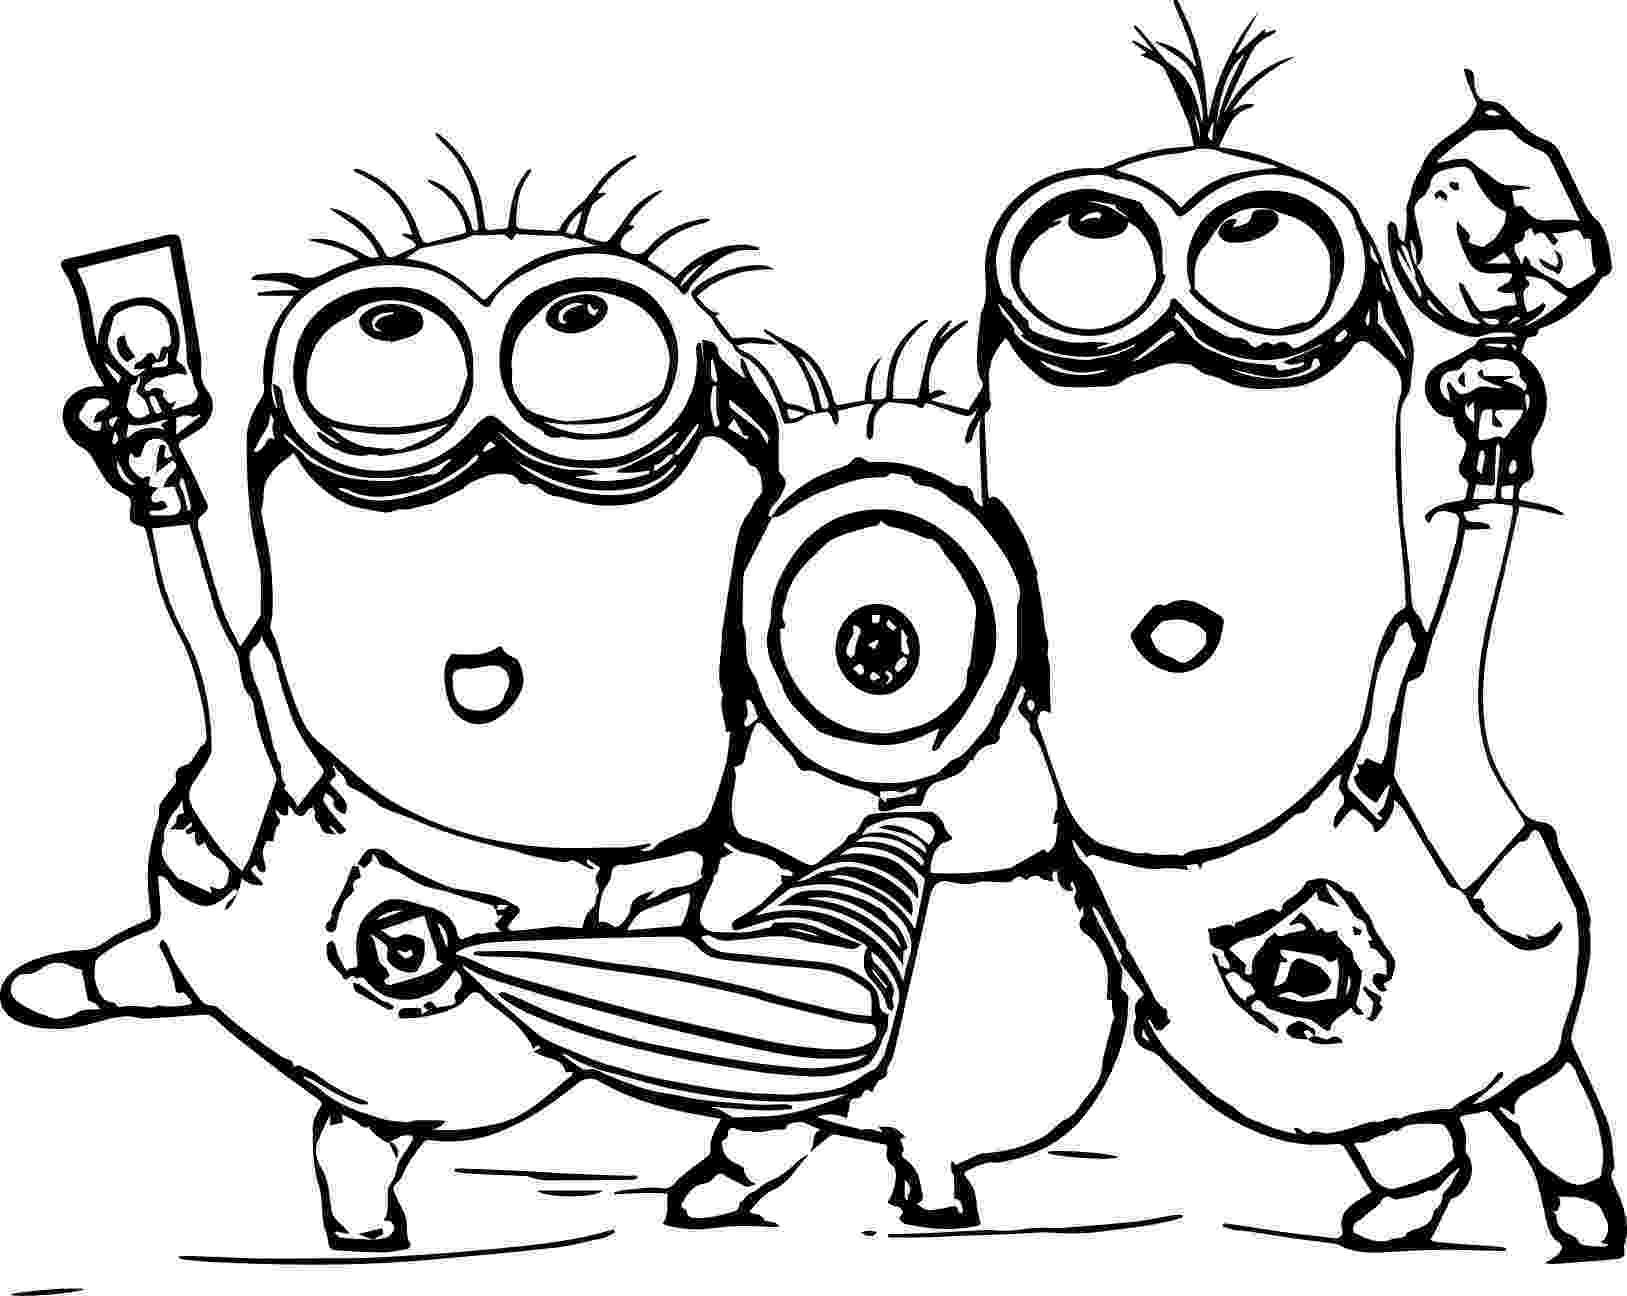 minion coloring pages online print download minion coloring pages for kids to have minion coloring pages online